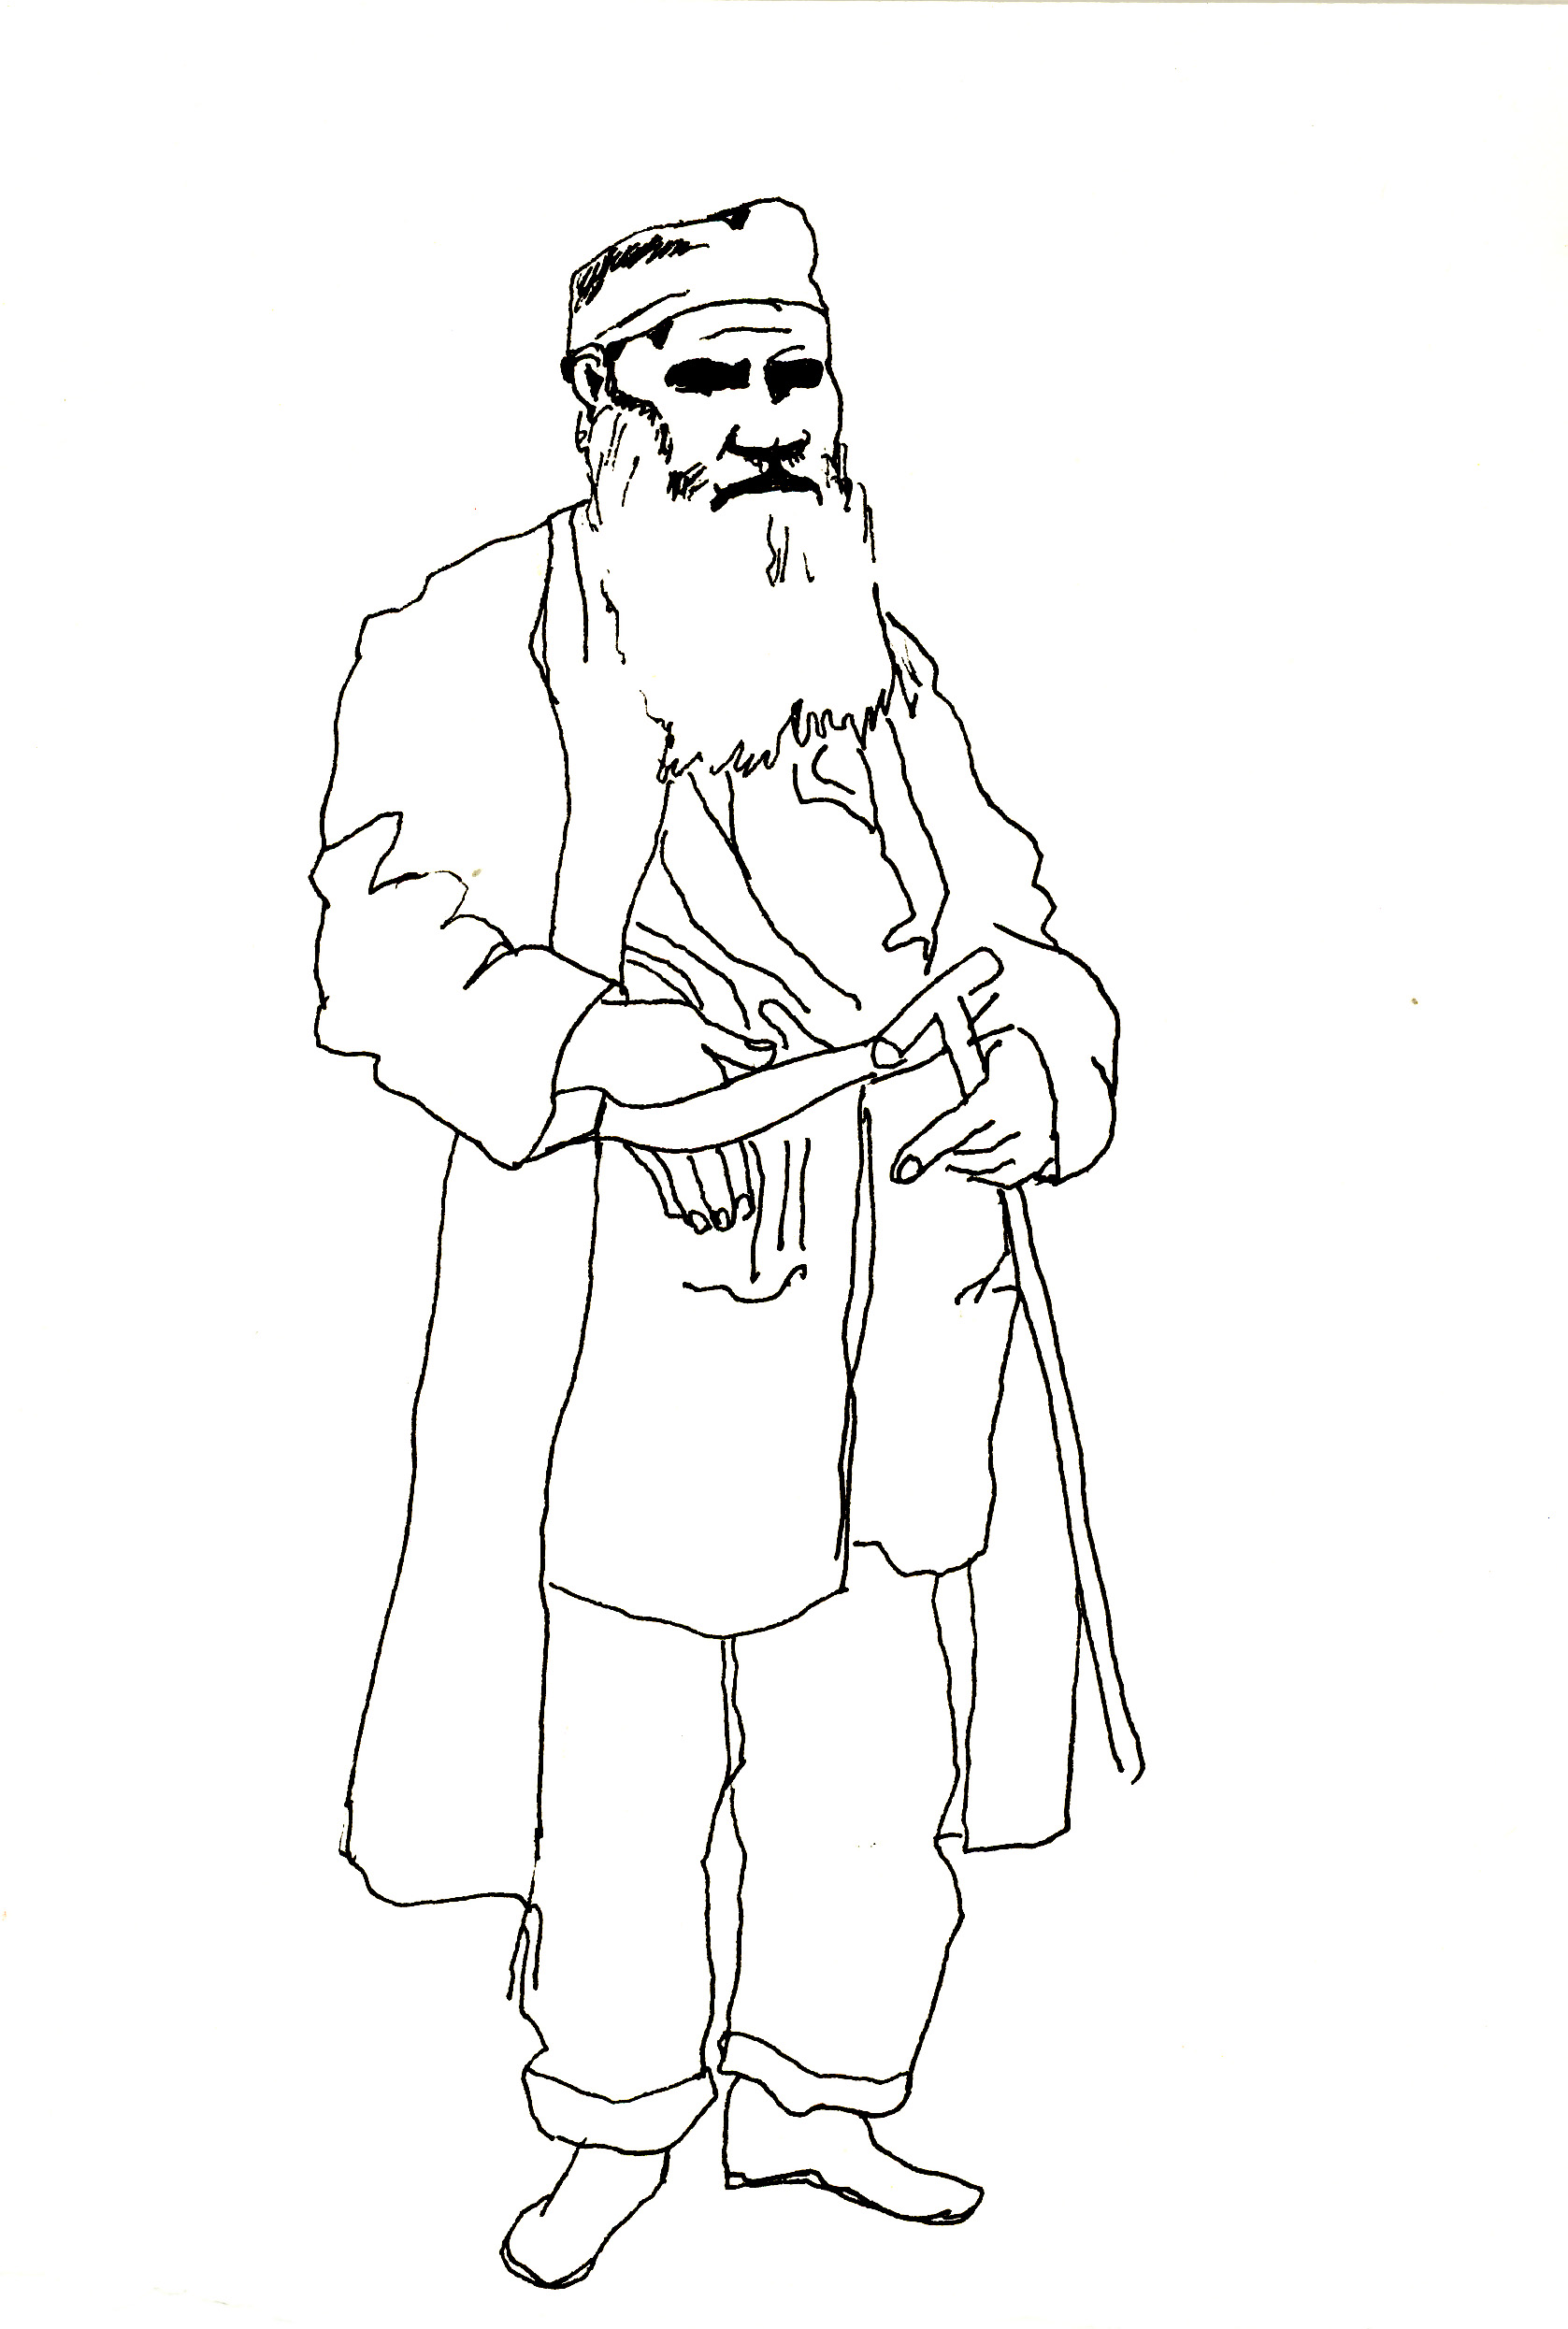 Tolstoy as an old man